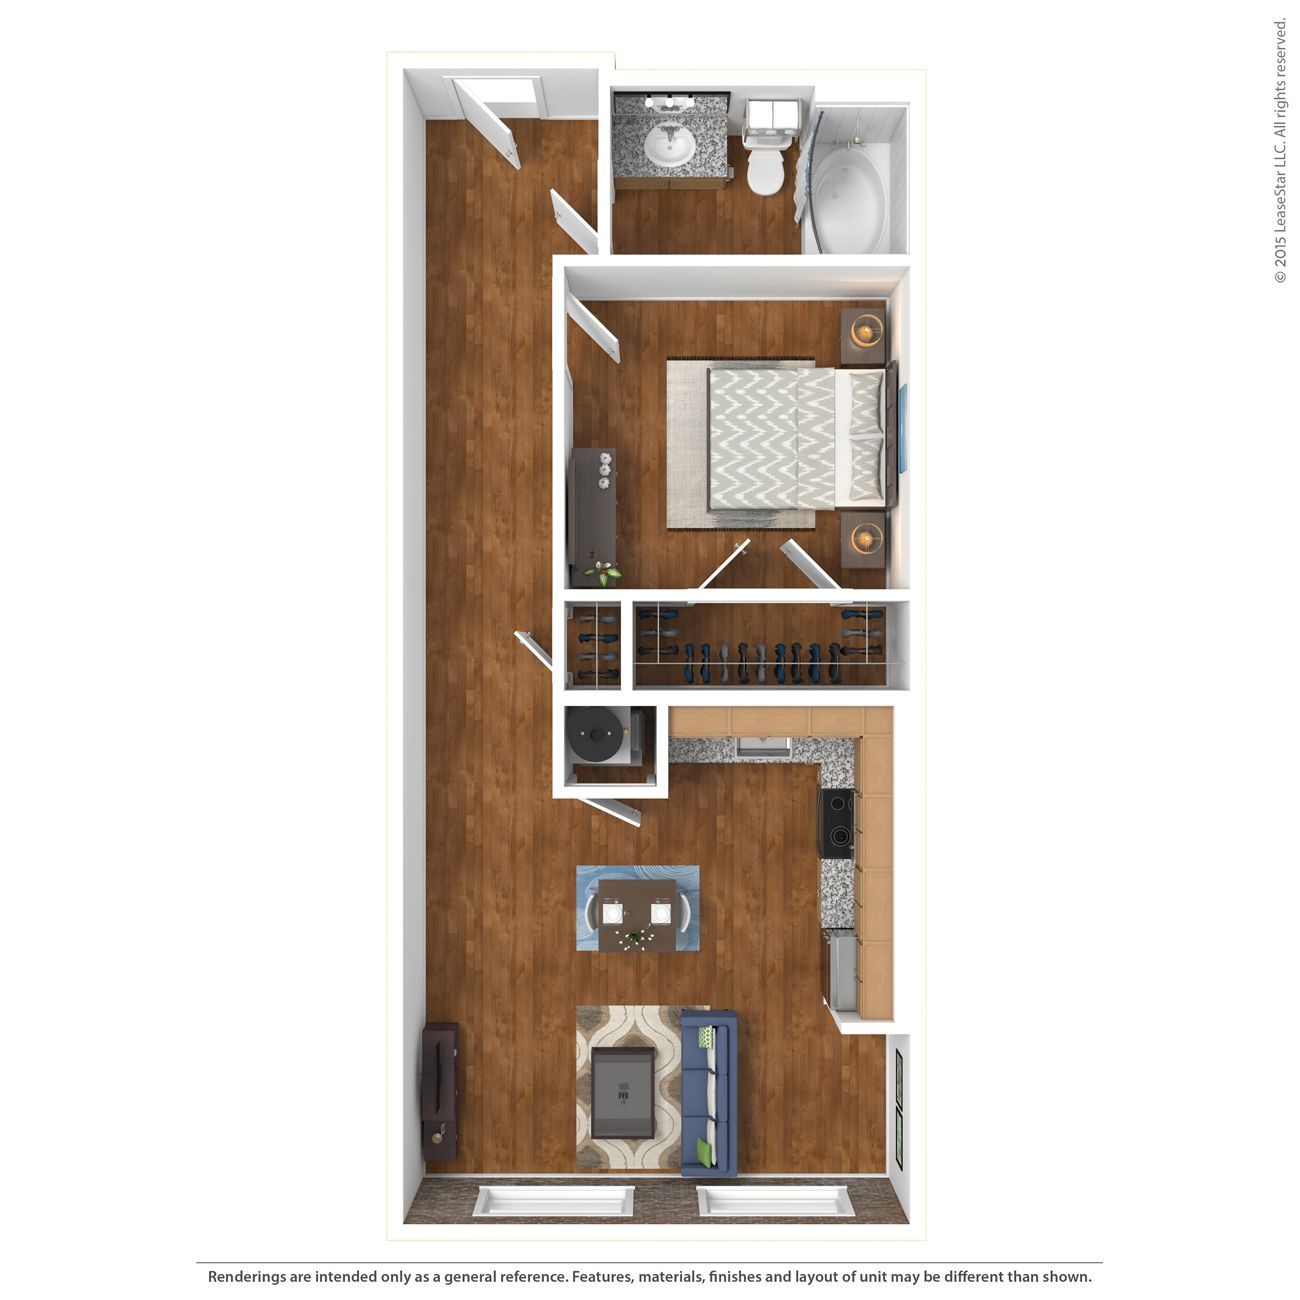 1 bedroom house with loft  A  Bedroom Floorplan  Sq Ft  Loft Floorplans  Pinterest